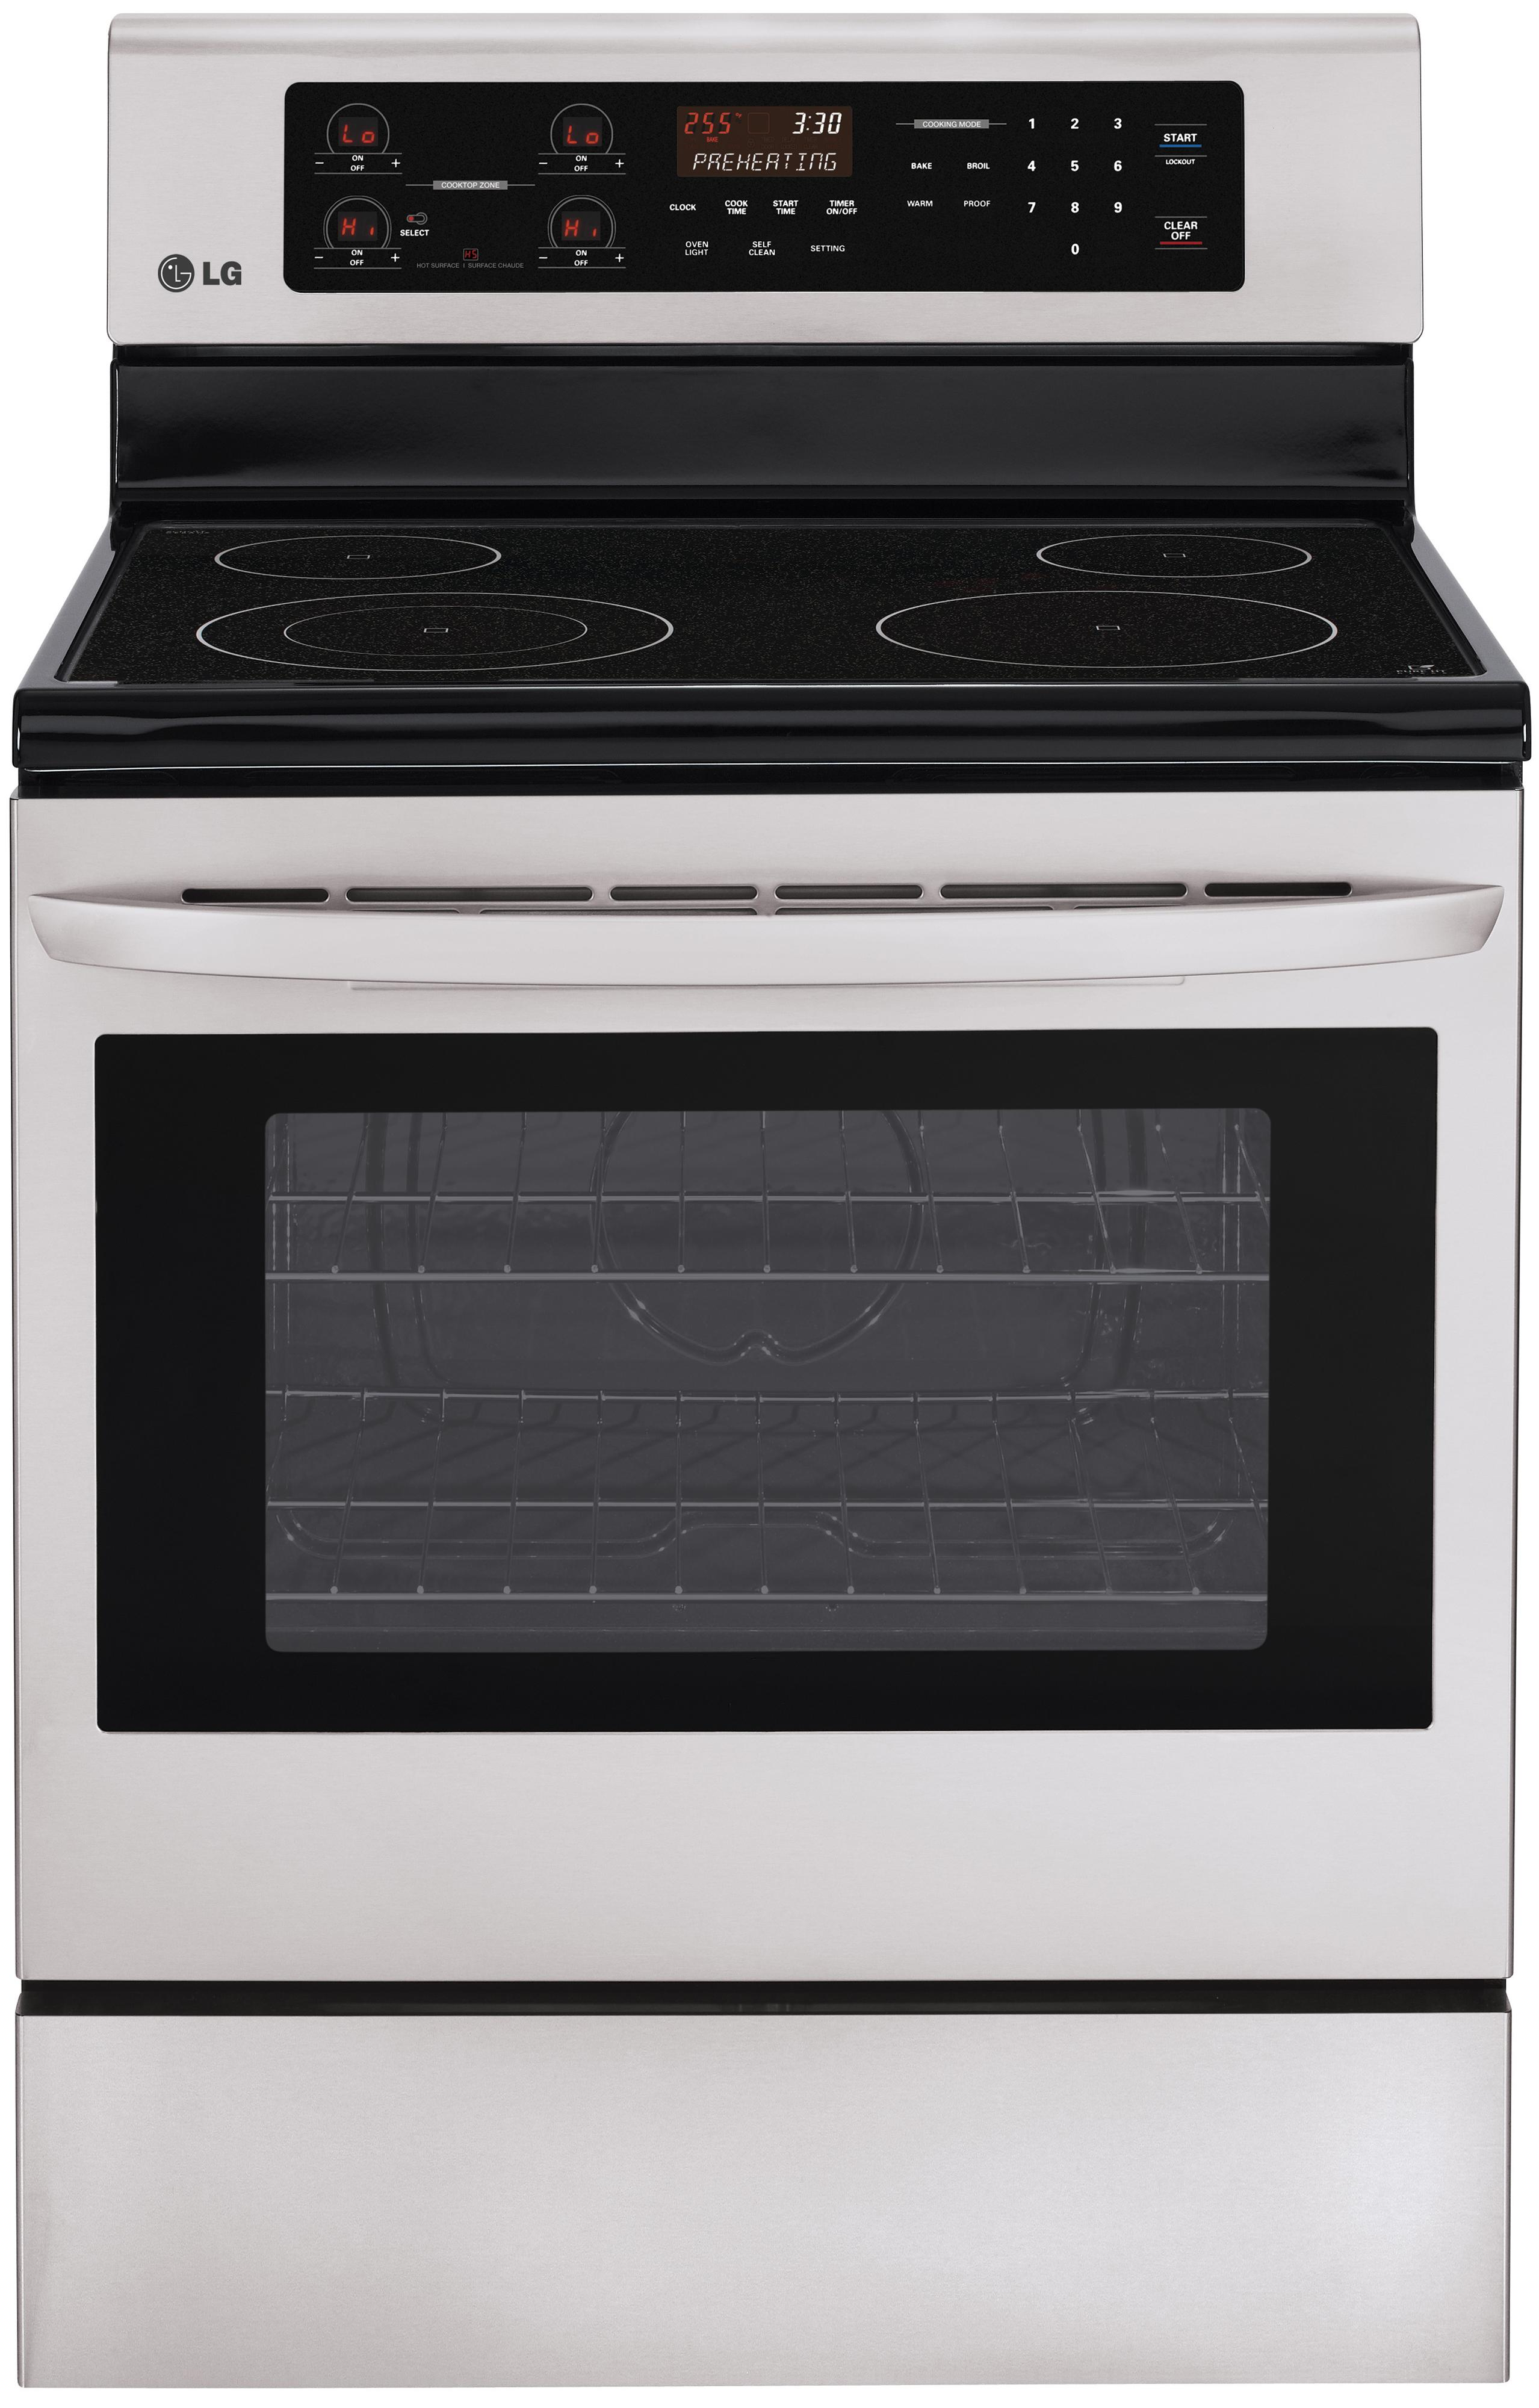 "LG Appliances Electric Ranges 30"" Freestanding Electric Range - Item Number: LRE3021ST"